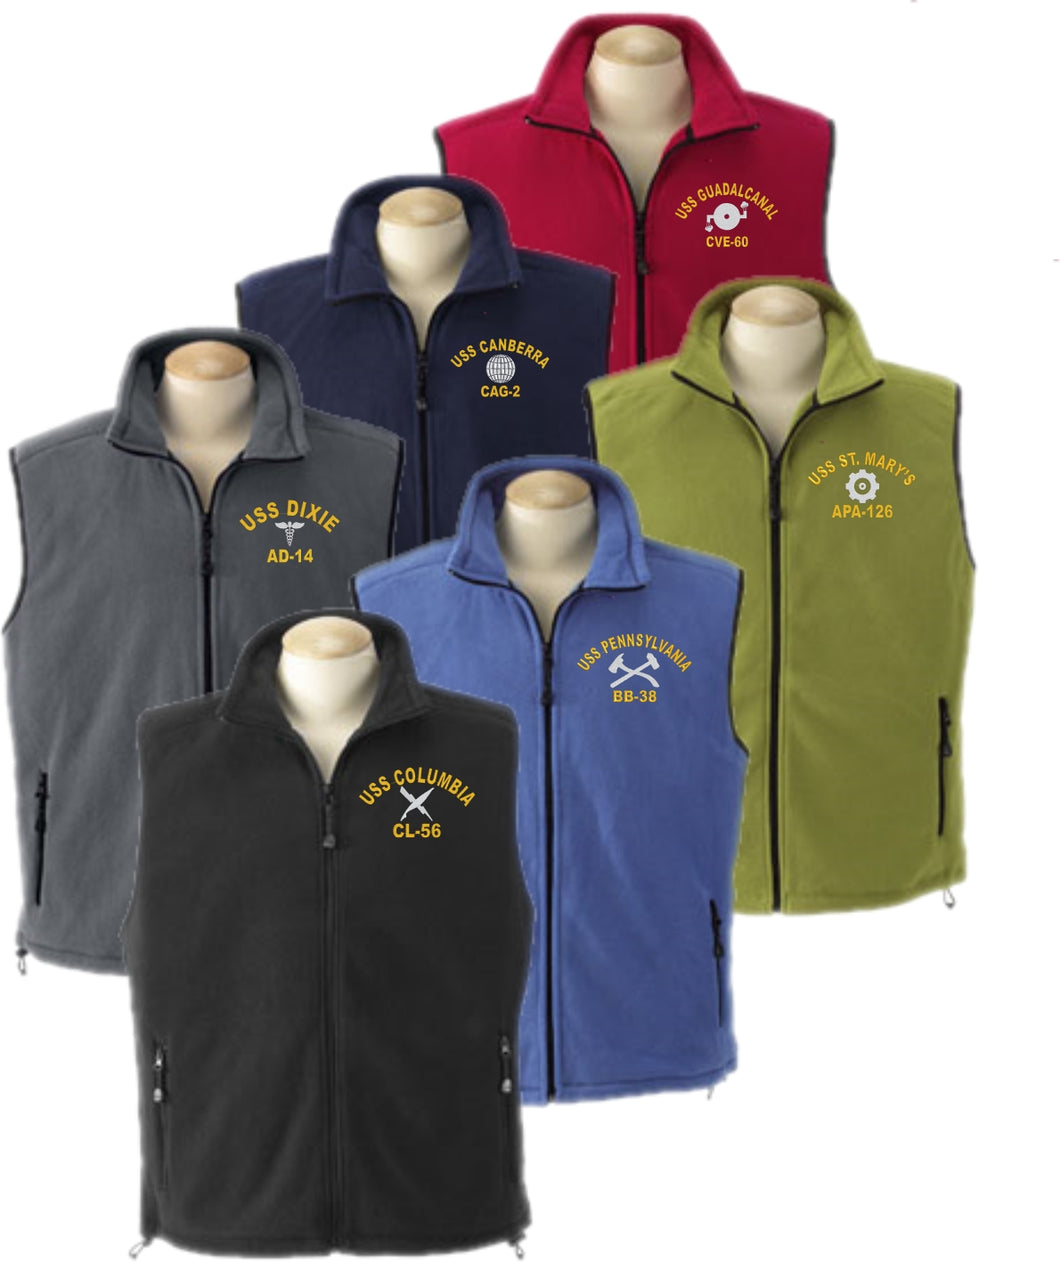 Custom Embroidered U.S. Navy Rating Fleece Vest - Full Zip - Custom Military Apparel & Accessories